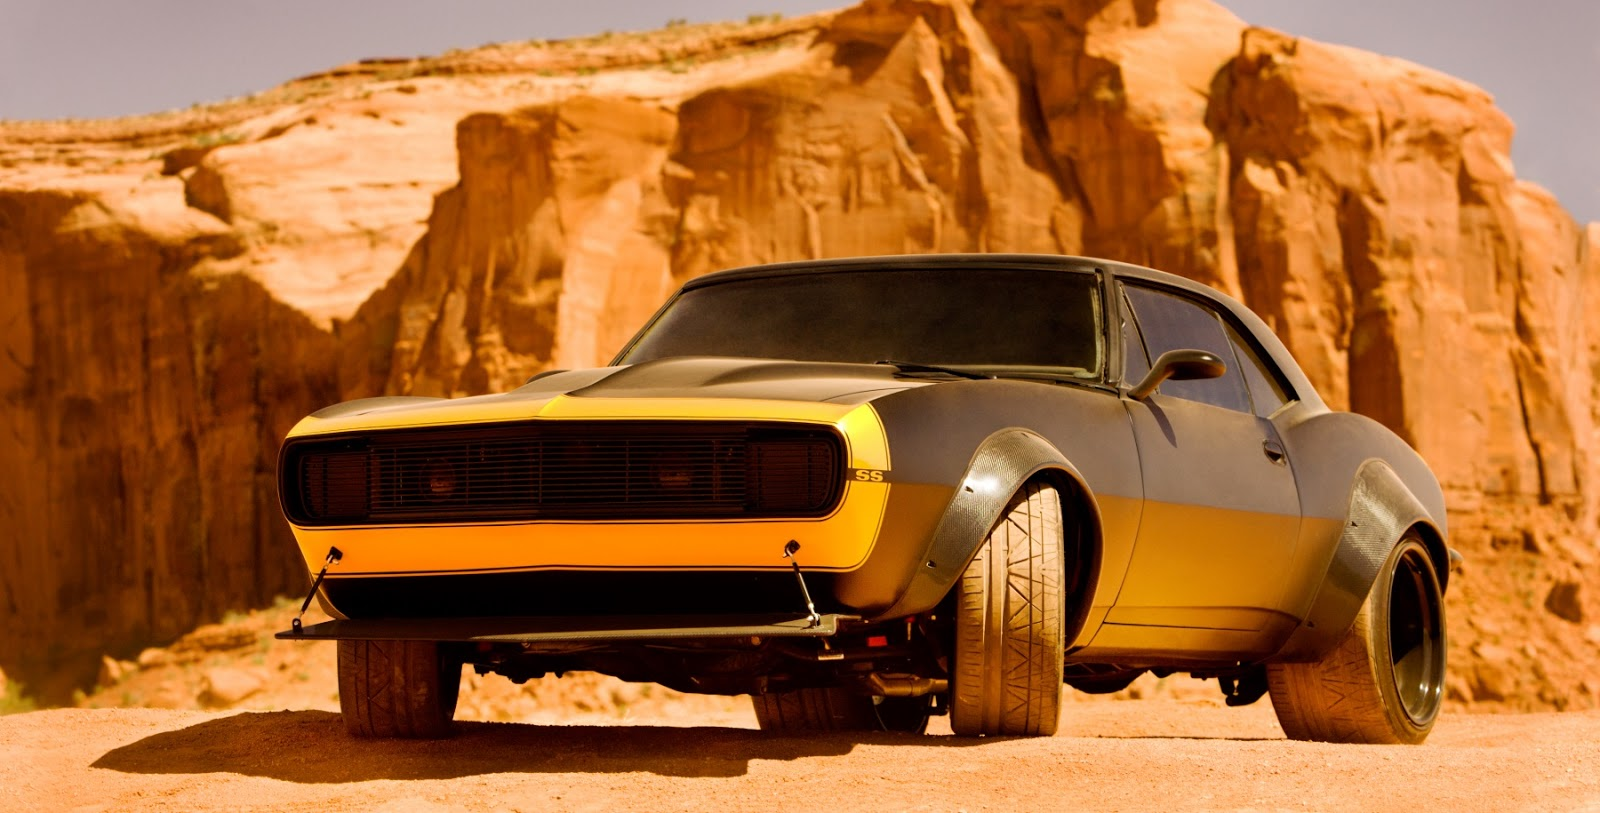 bumblebee becomes 1967 camaro in transformers 4. Cars Review. Best American Auto & Cars Review